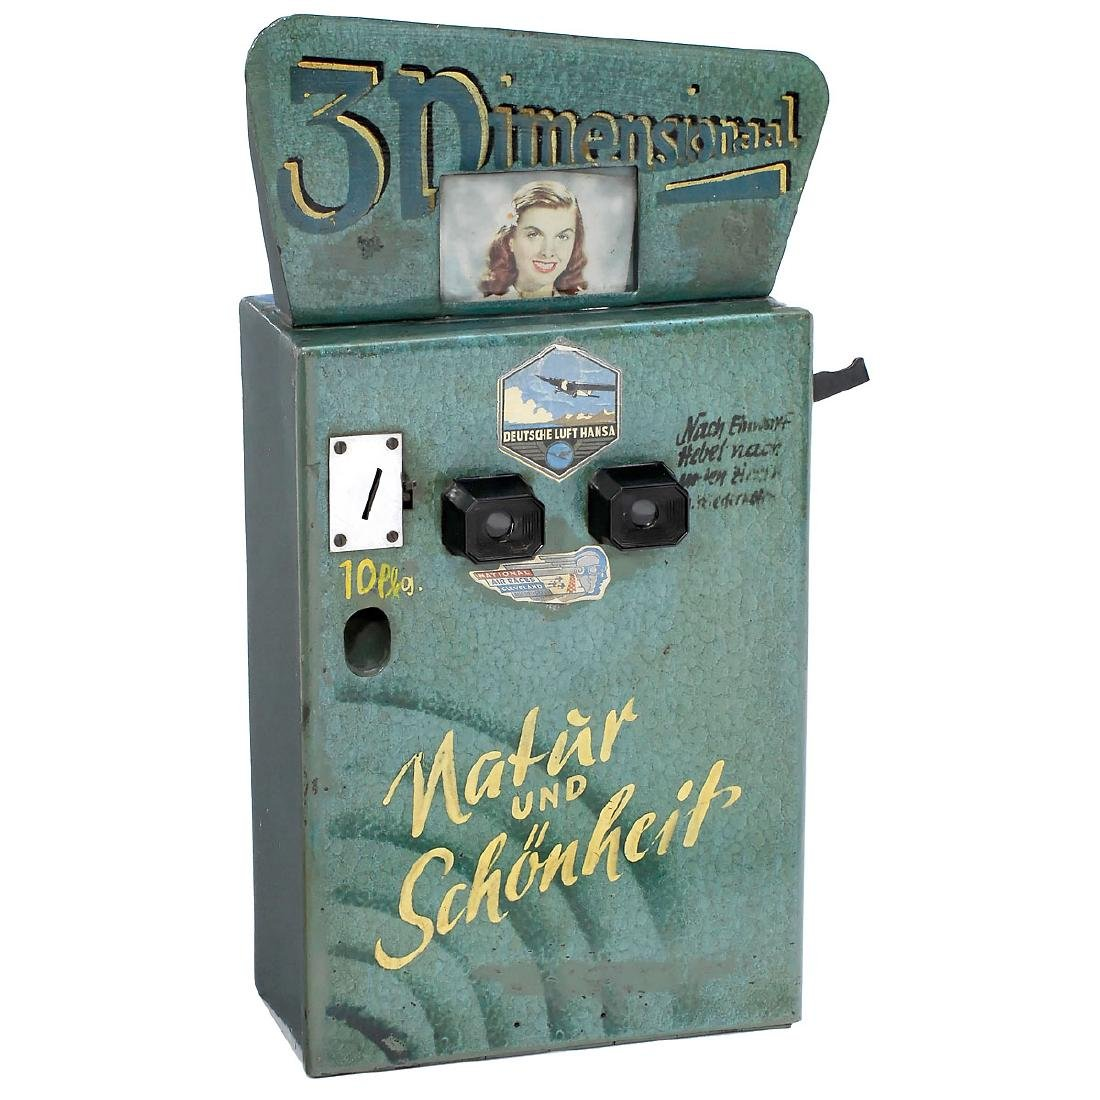 Coin-Operated Stereo Viewer (View-Master), c. 1945–55 - 2